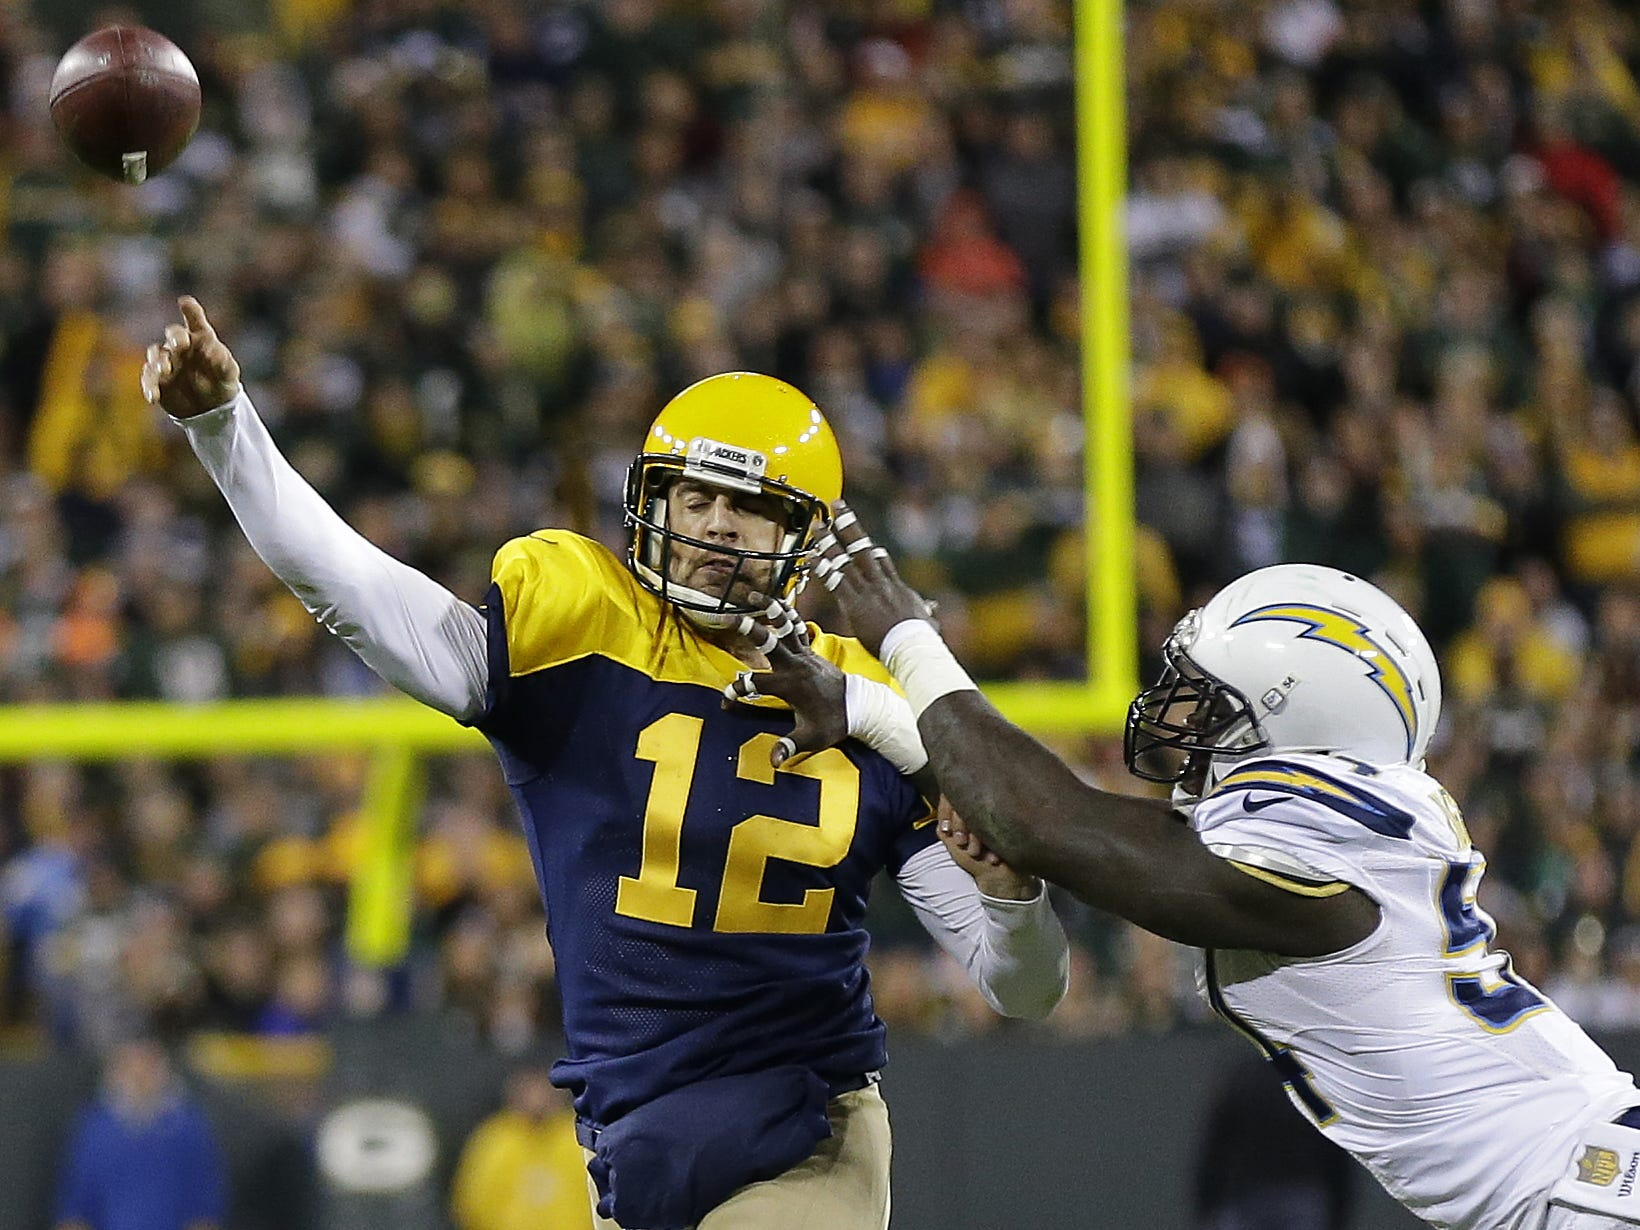 Week 9: Packers at Chargers, 3:25 p.m. CT Sunday Nov. 3, Dignity Health Sports Park (CBS)